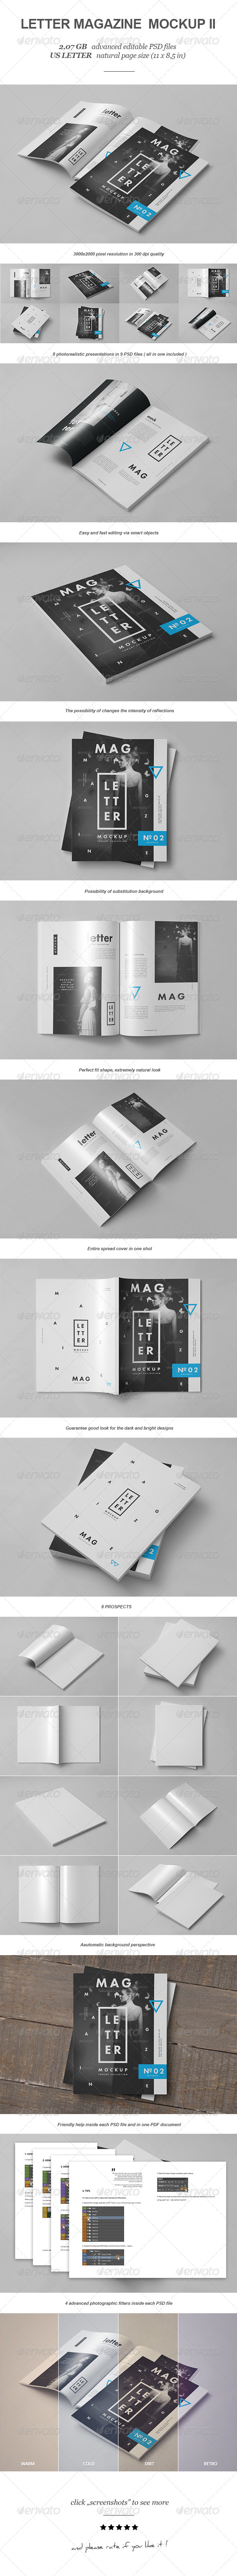 GraphicRiver Letter Magazine Brochure Mock-up II 8234615